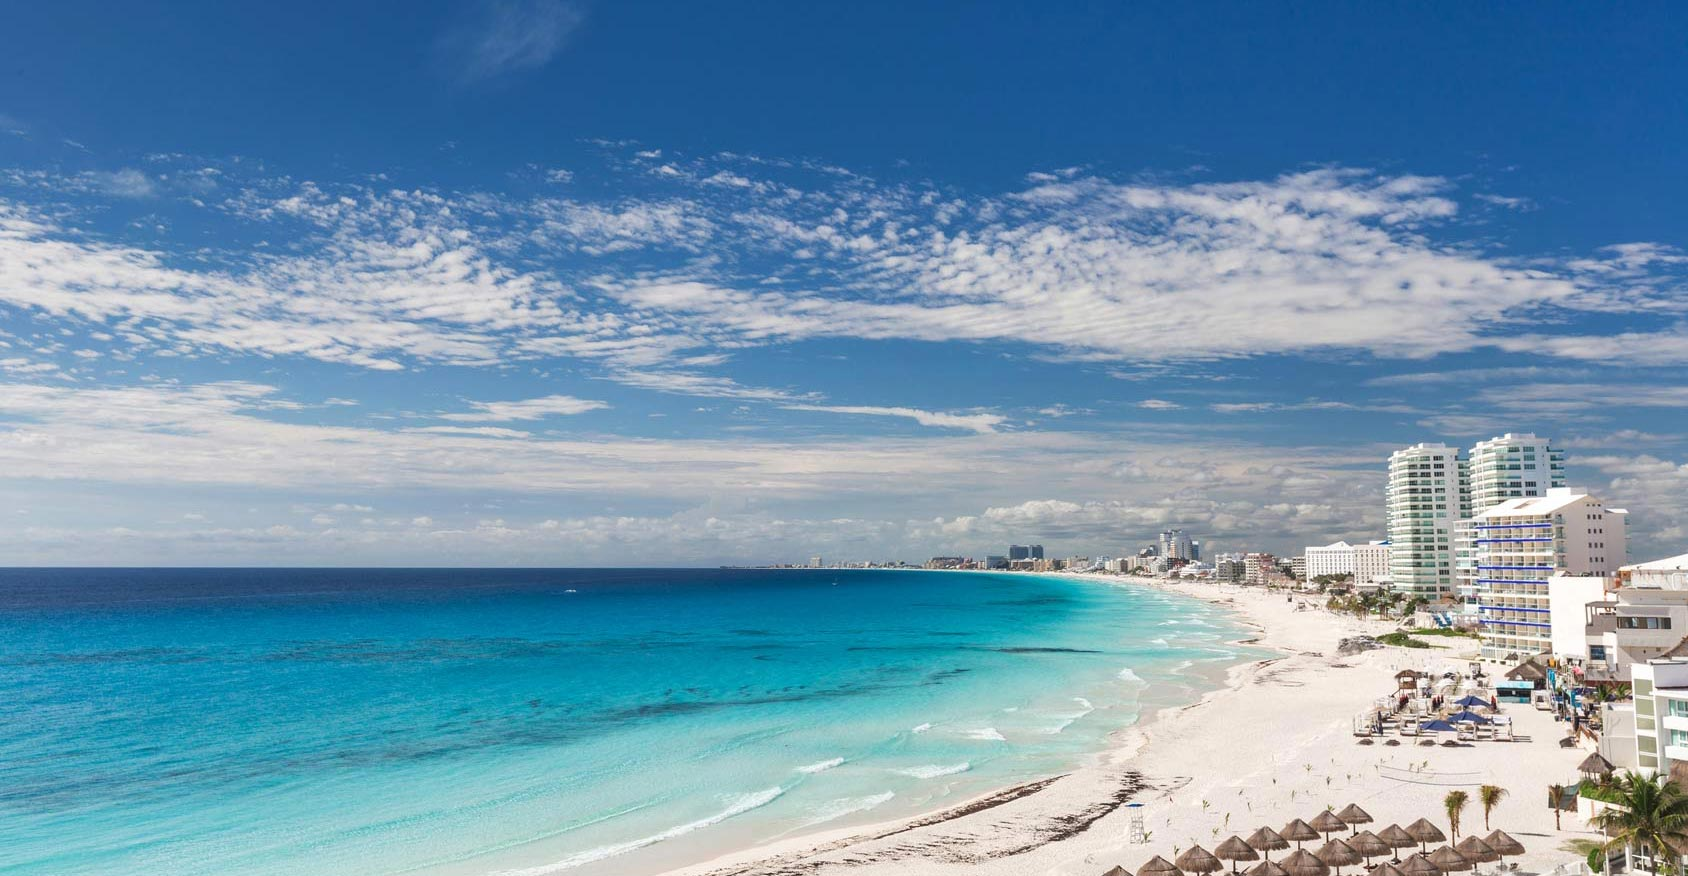 Cancun mexico travel info hotels tours transfers more for Hotels tours